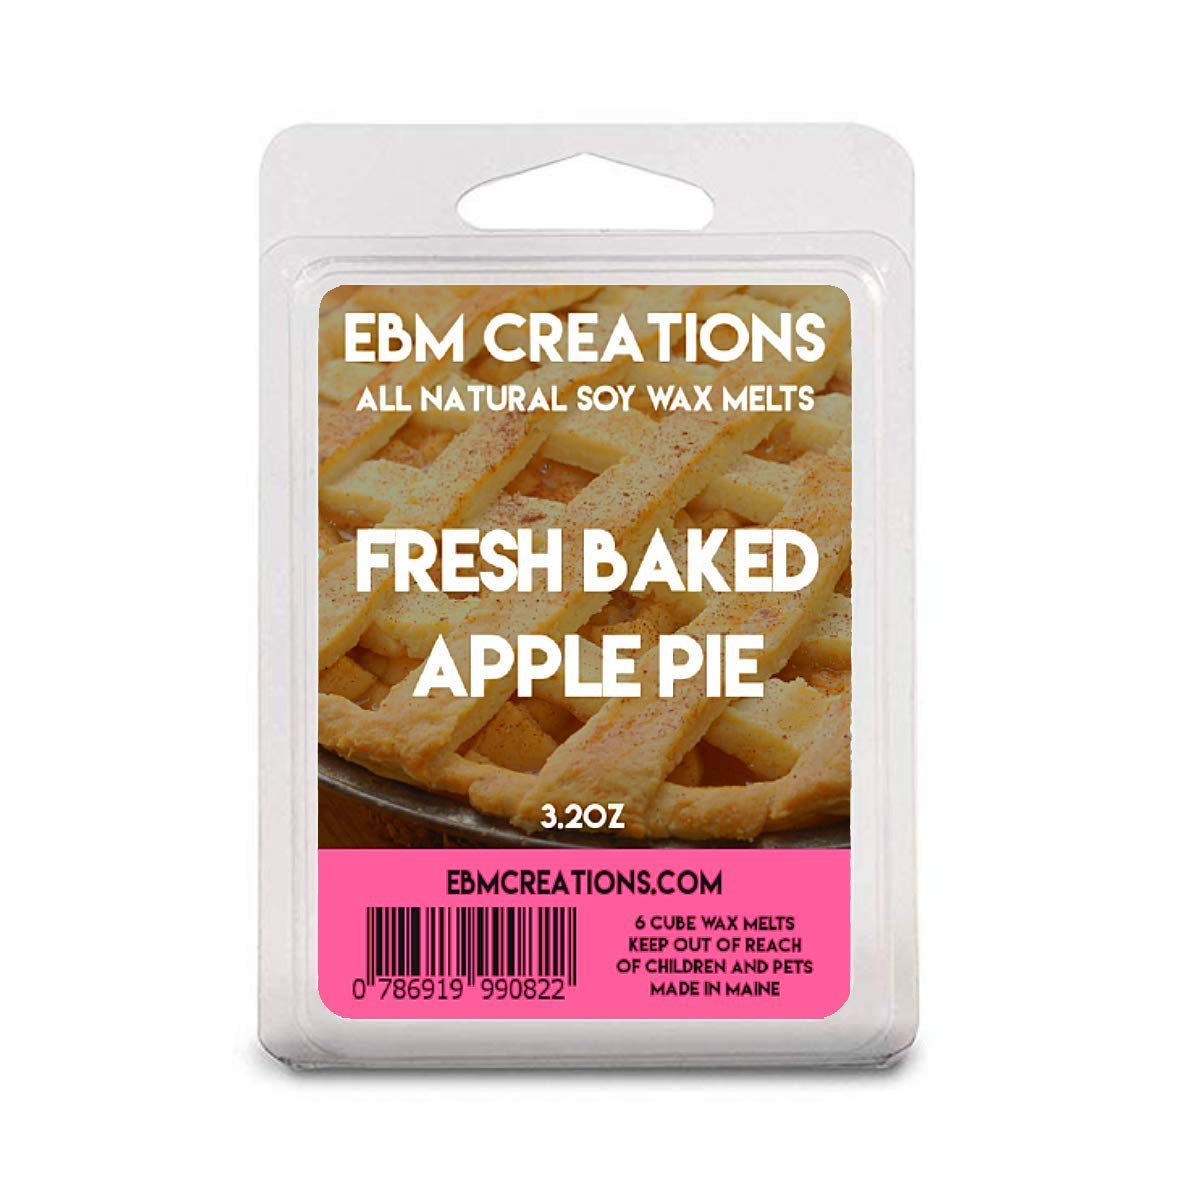 Fresh Baked Apple Pie - Scented All Natural Soy Wax Melts - 6 Cube Clamshell 3.2oz Highly Scented!